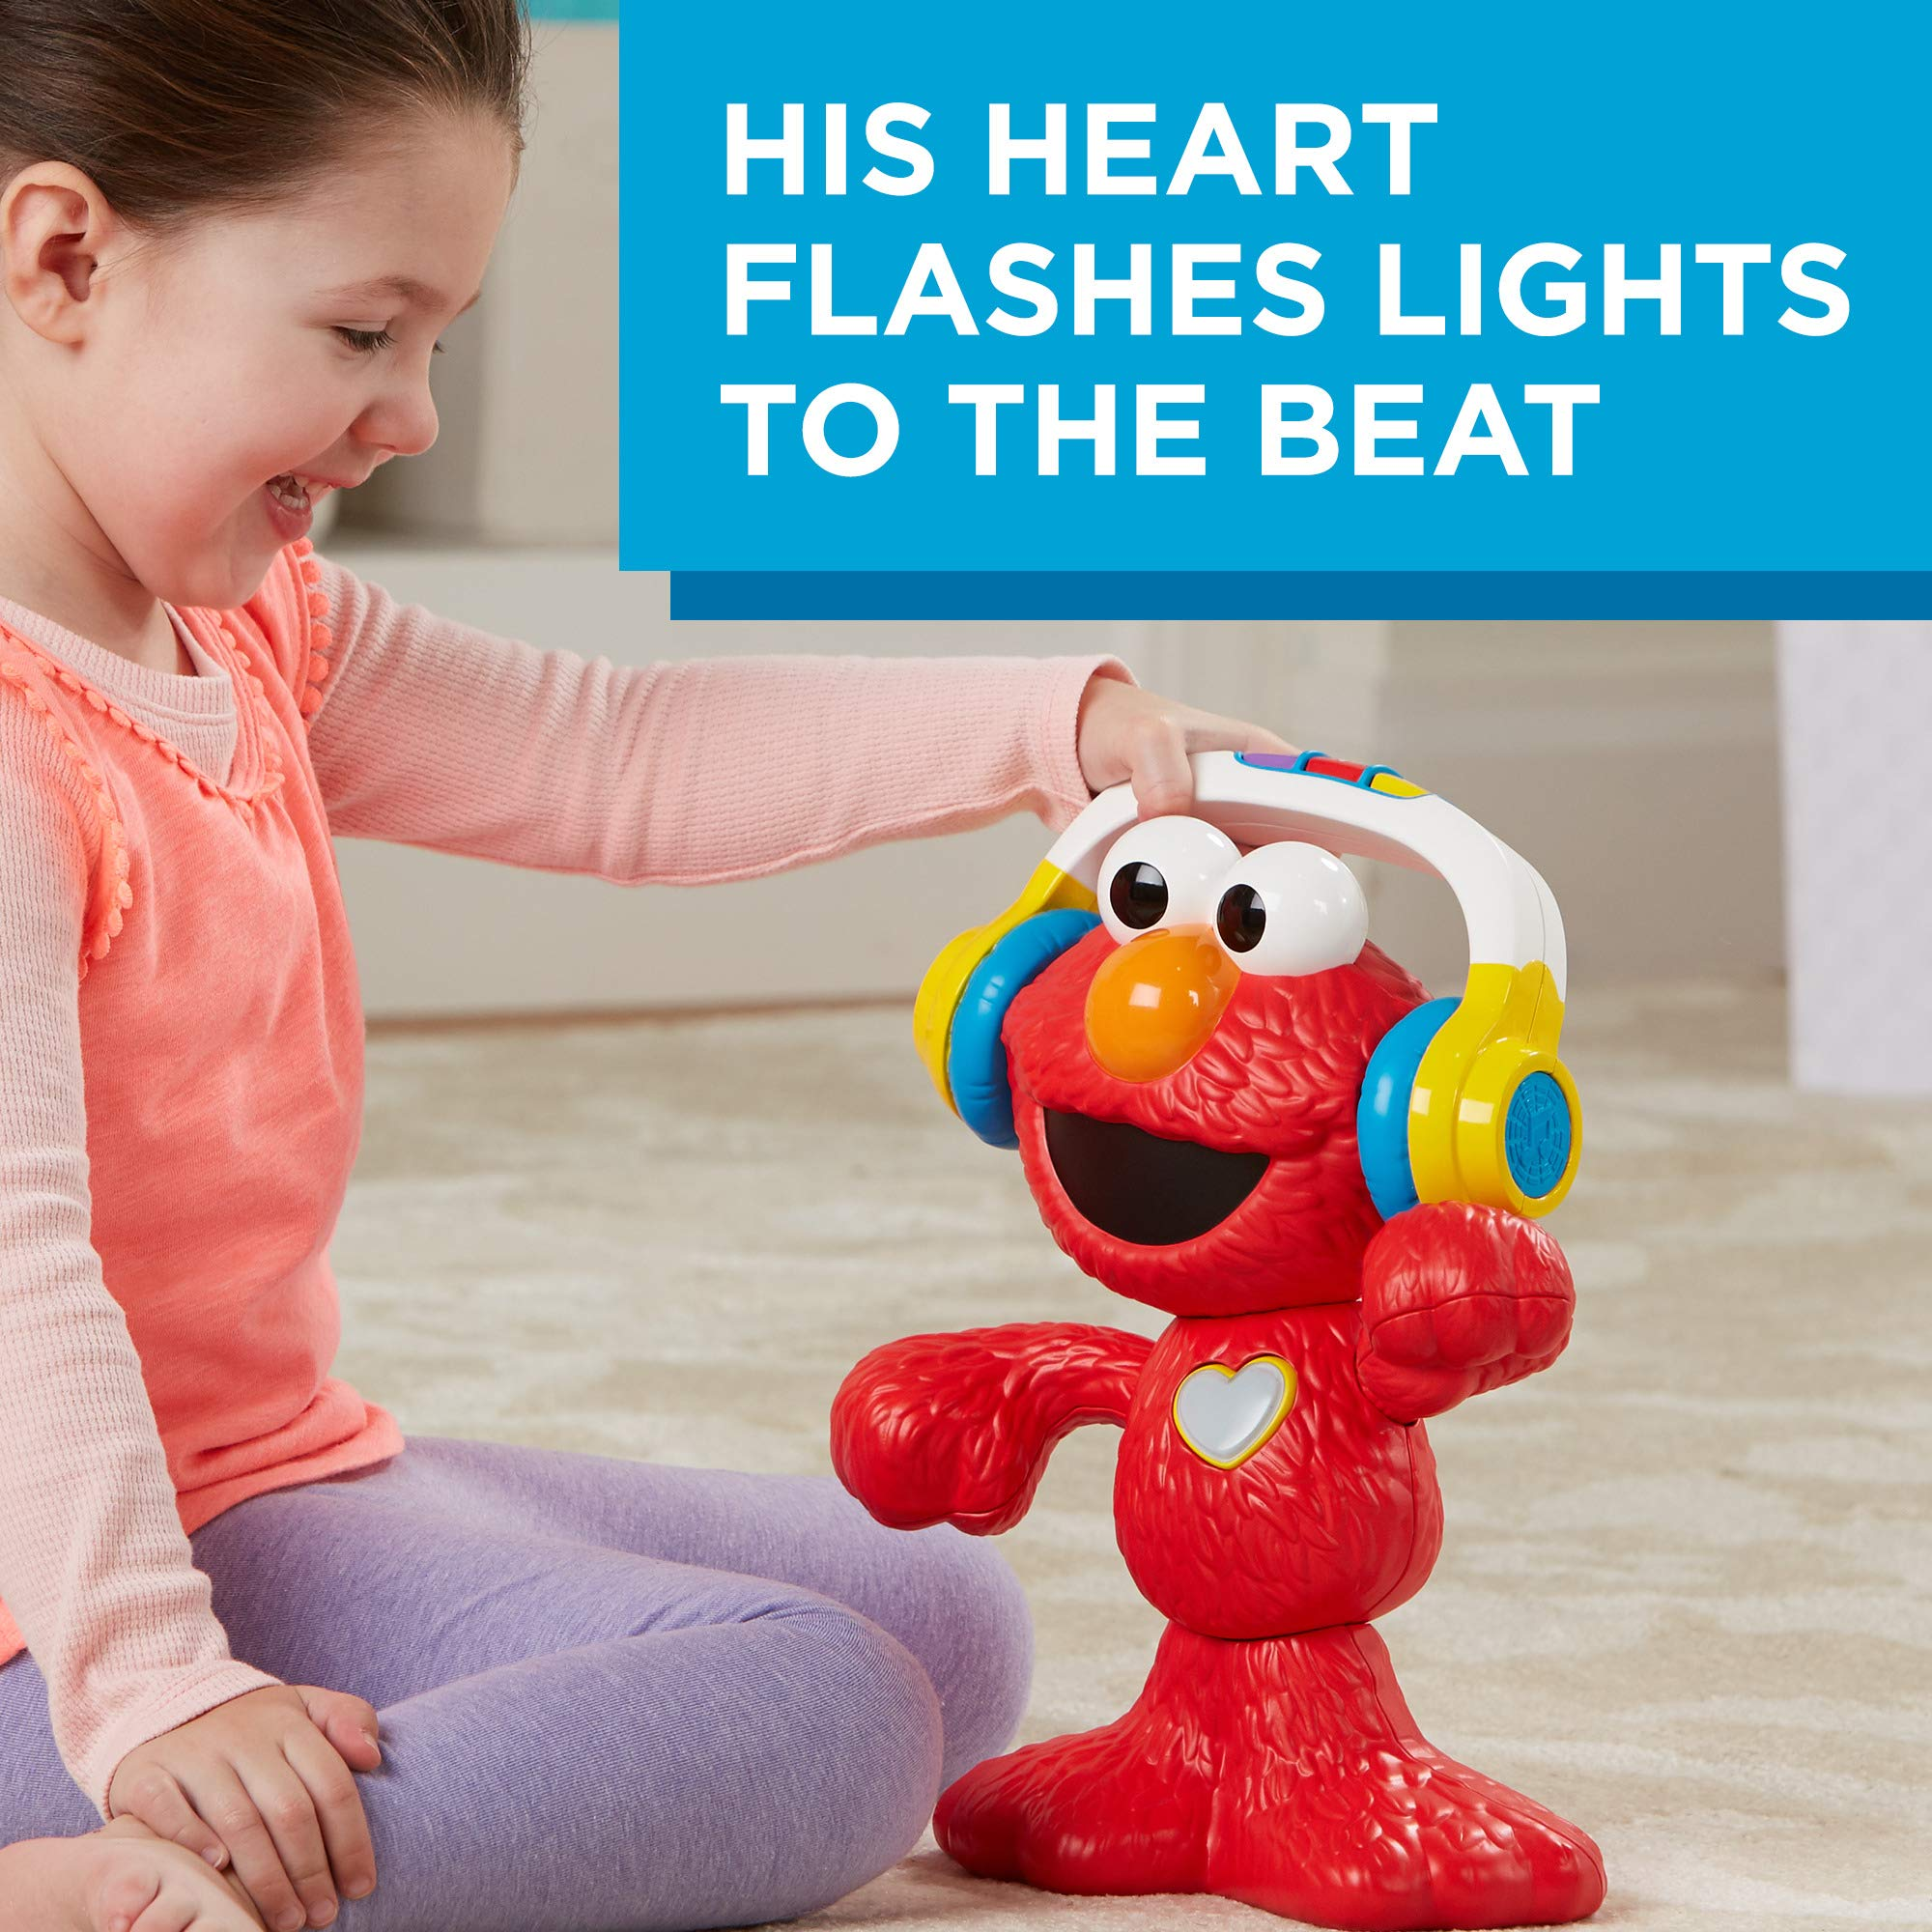 Sesame Street Let's Dance Elmo: 12-inch Elmo Toy that Sings and Dances, With 3 Musical Modes, Sesame Street Toy for Kids Ages 18 Months and Up by Sesame Street (Image #4)